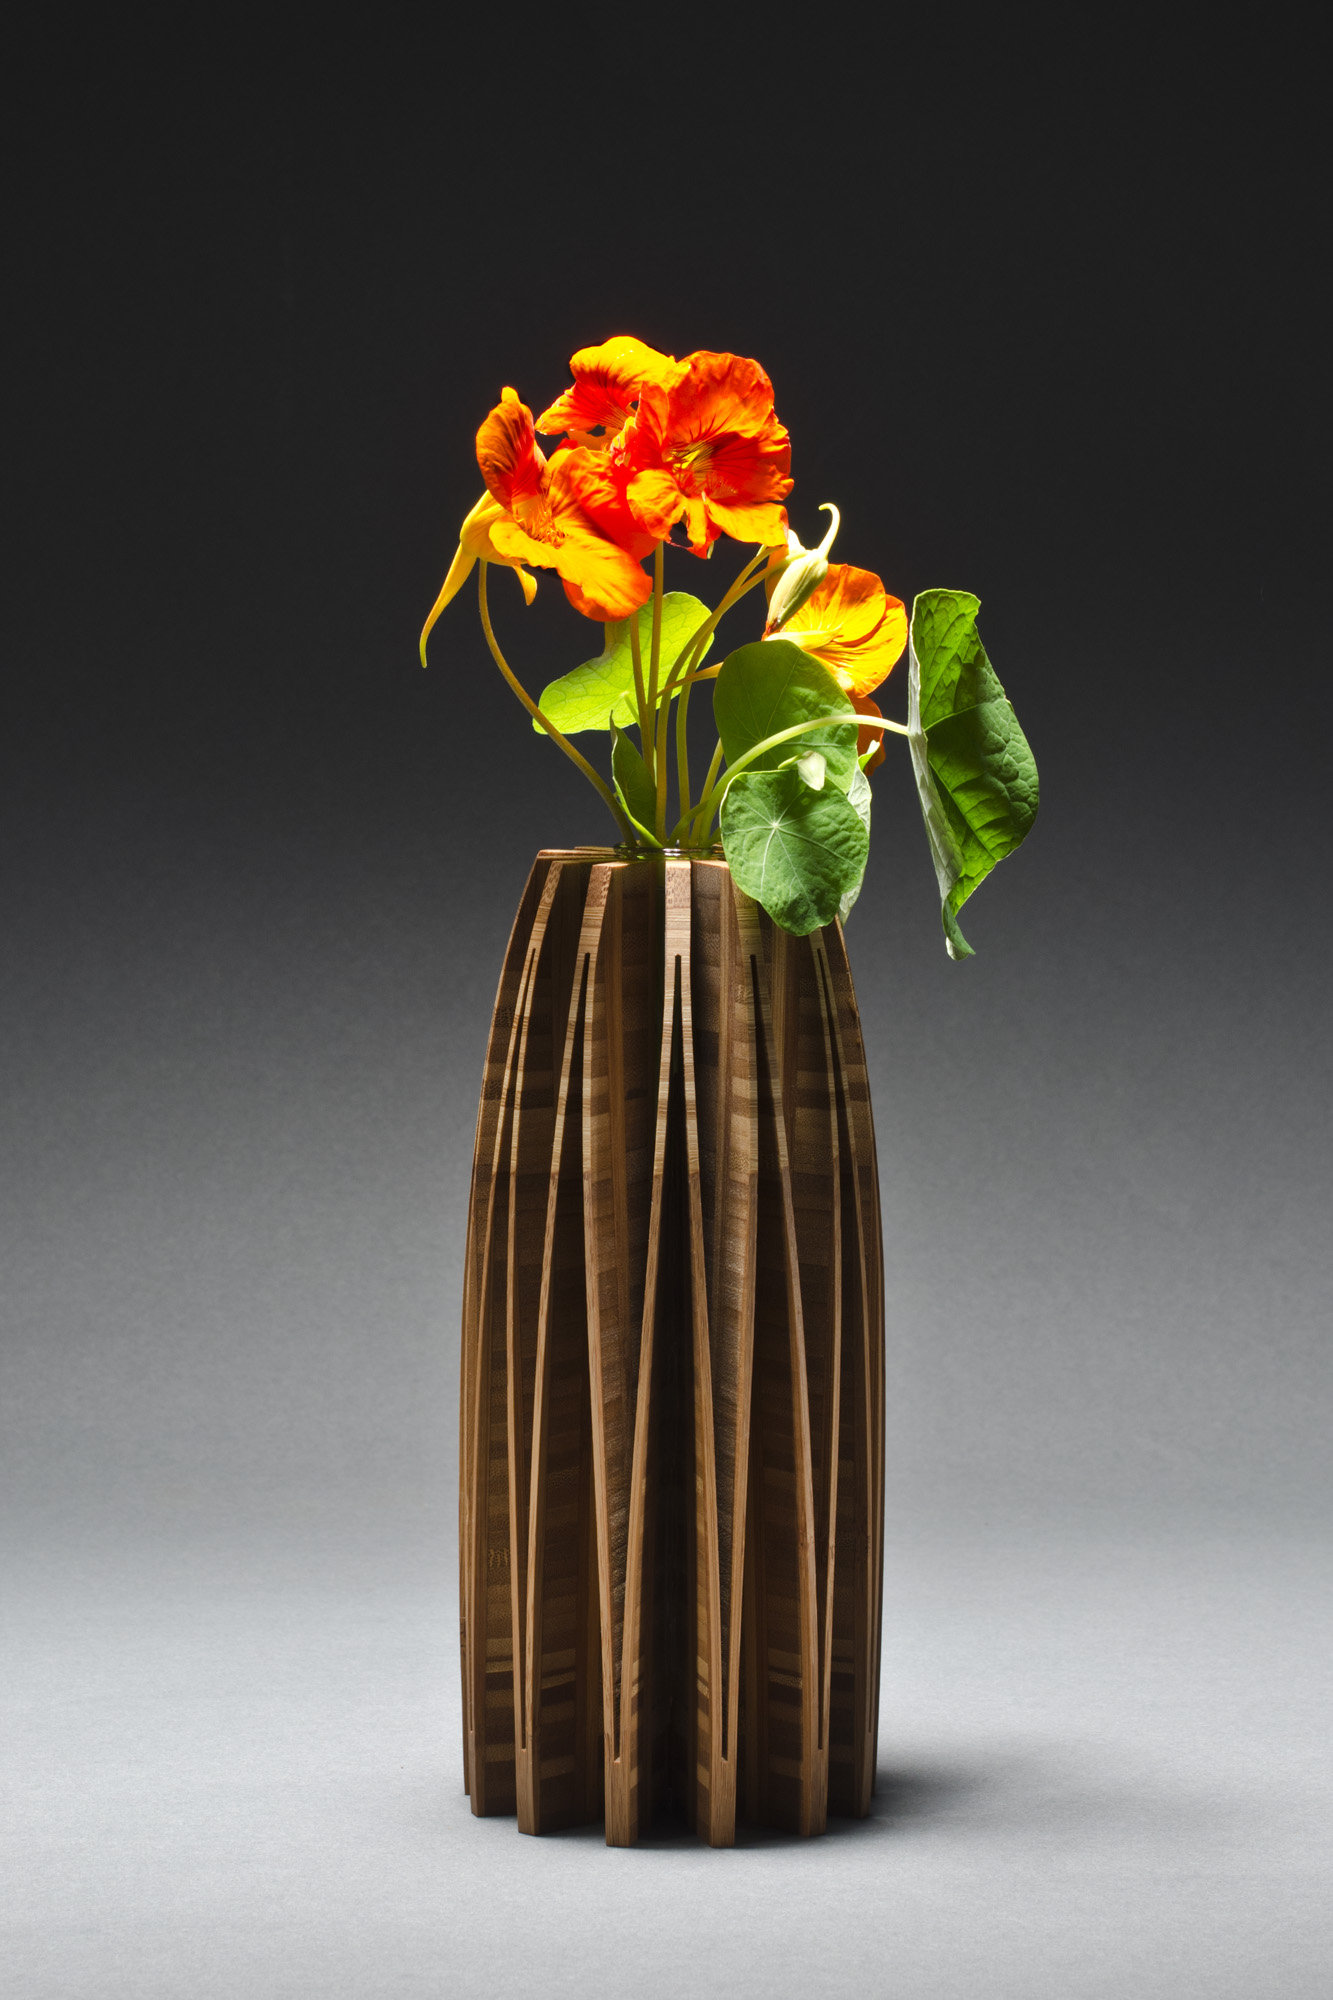 Orchid Vase By Seth Rolland Wood Vase Artful Home